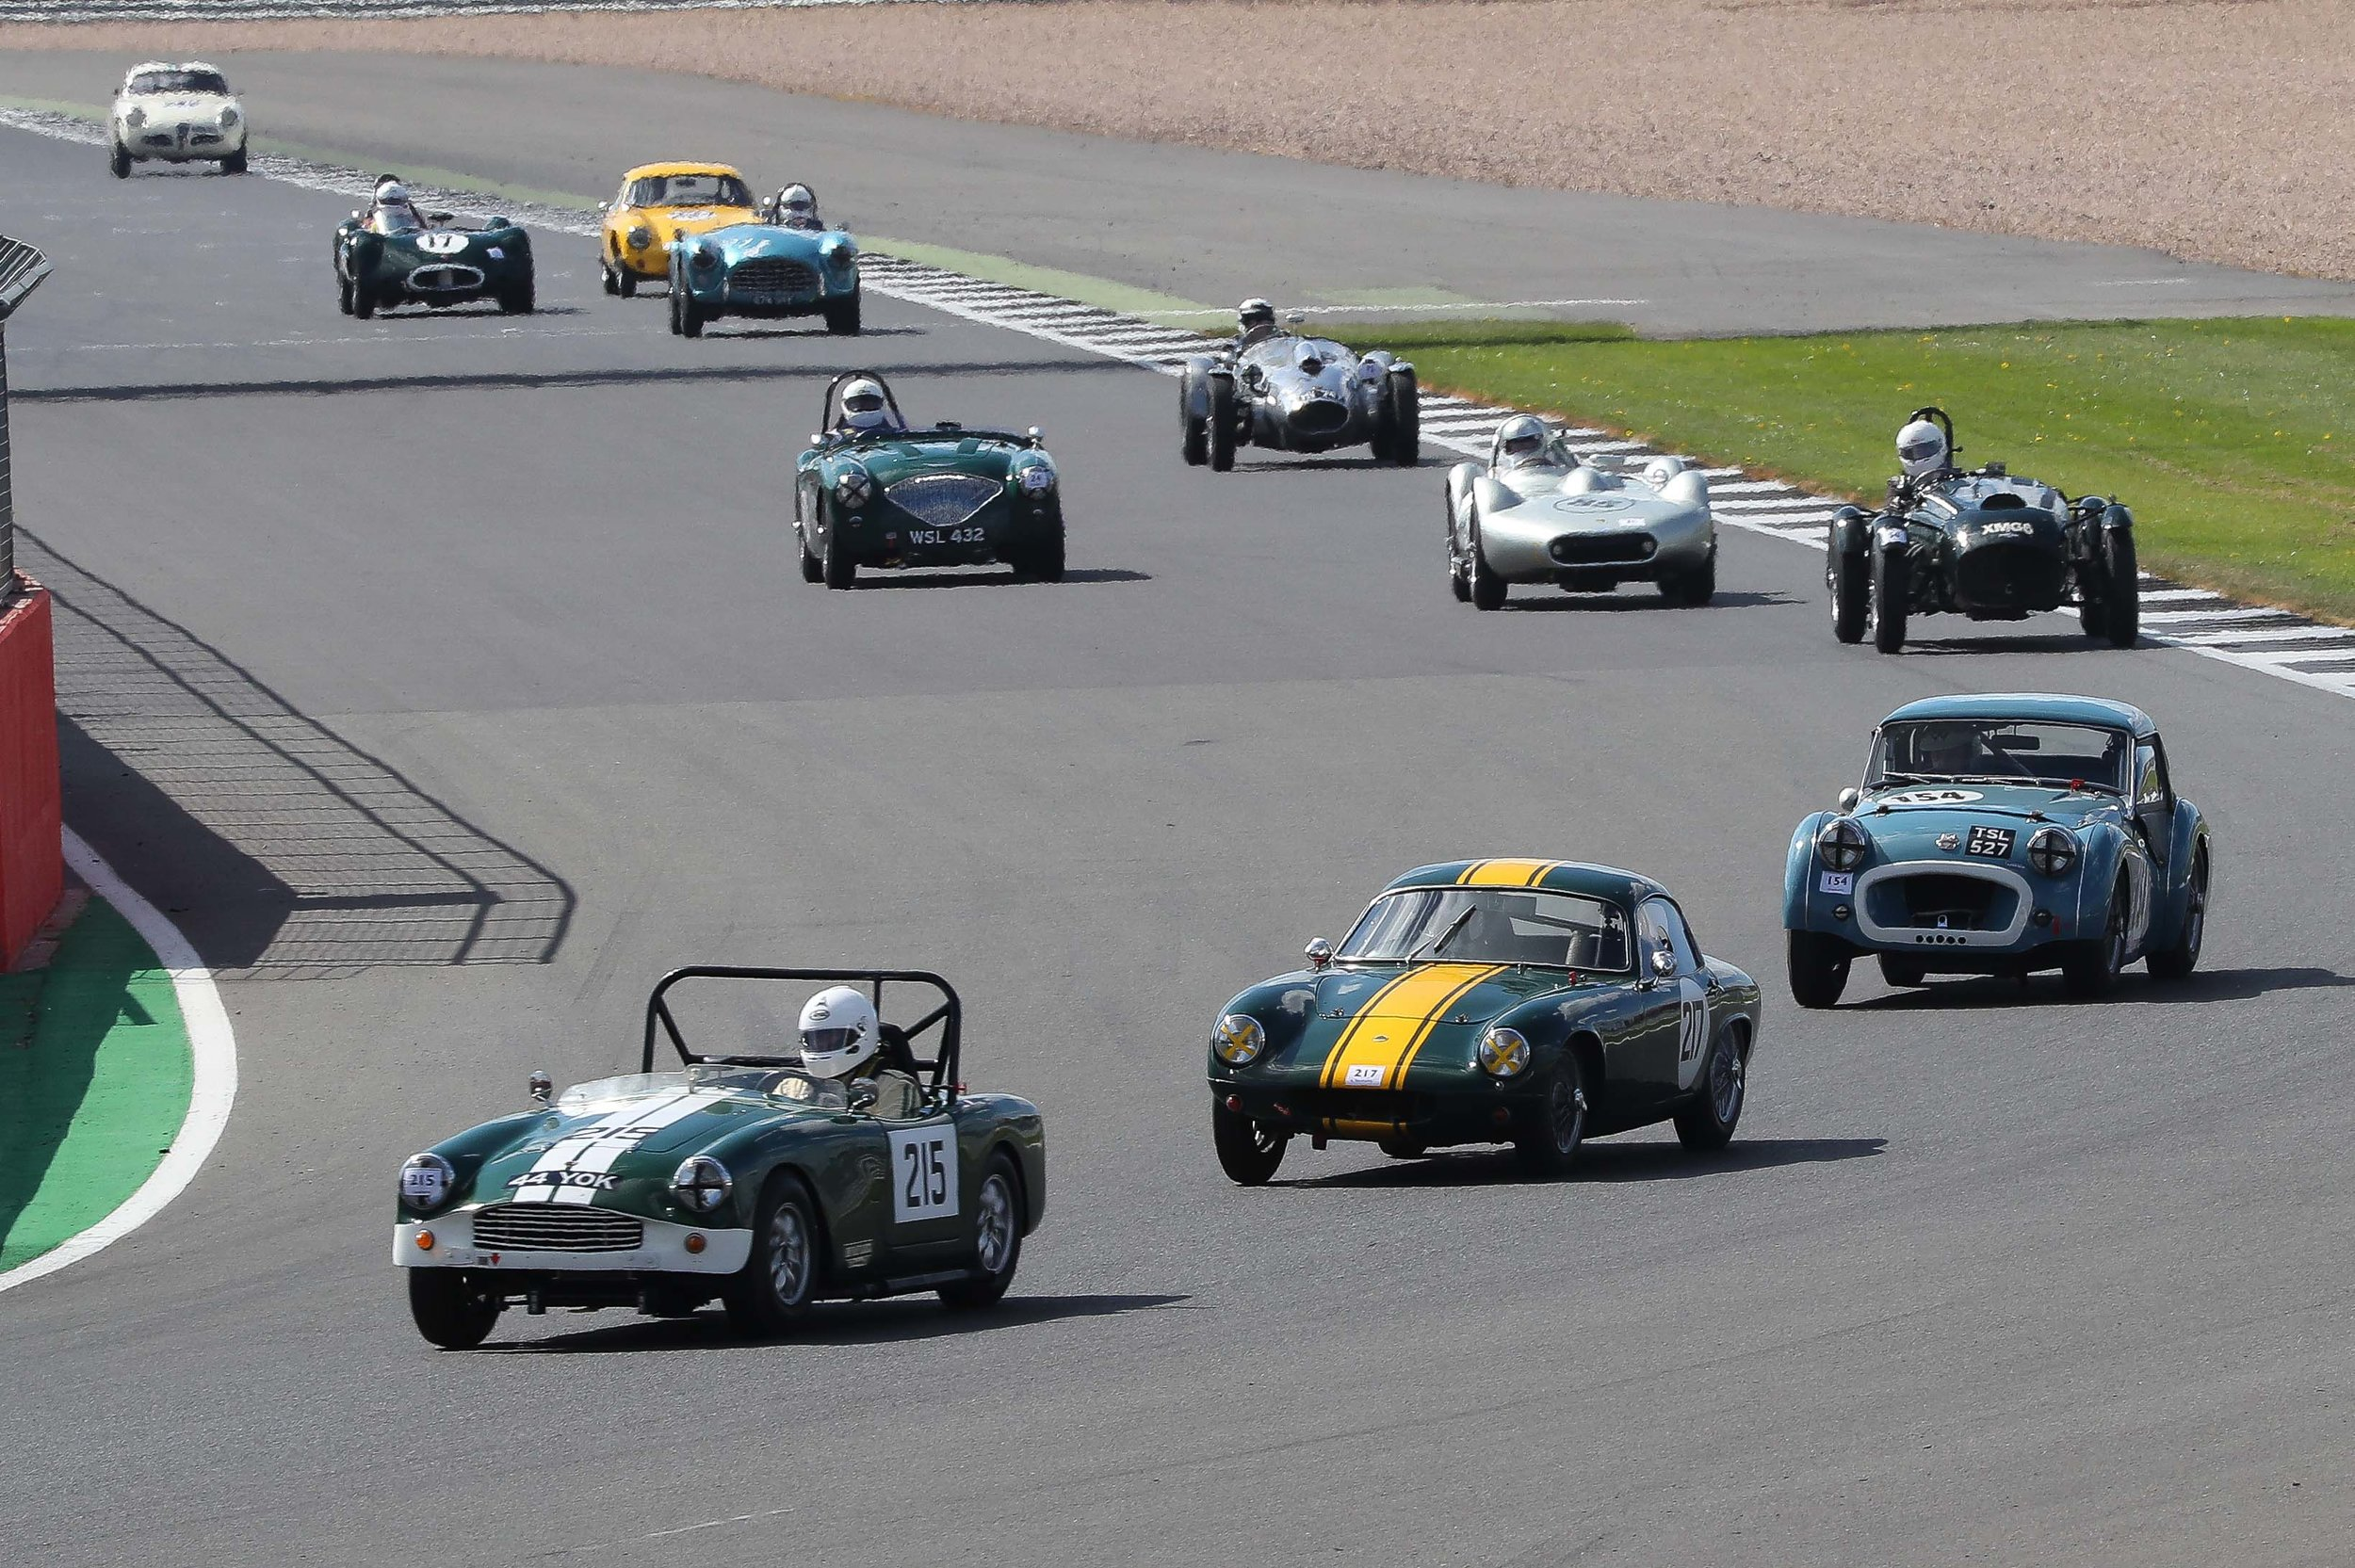 Paul Ziller in the TR2 was on a mission and had passed all those cars strung out behind him and latched onto the Turner /Lotus battle to make it a 3 way struggle. Just behind, Martyn Corfield in his Frazer Nash Le Mans Replica keeps ahead of the Lister Bristol/Austin Healey encounter whilst Peter Campbell in the Wingfield Bristol maintains a watching brief. Behind Peter is the AC Ace /Lotus Elite battle now joined by the LECo2 Sports of Alex Quattlebaum who had passed Brian Arculus in the Alfa Romeo Giulietta SVZ, seen in the background, on the previous lap.              Photo - Richard Styles